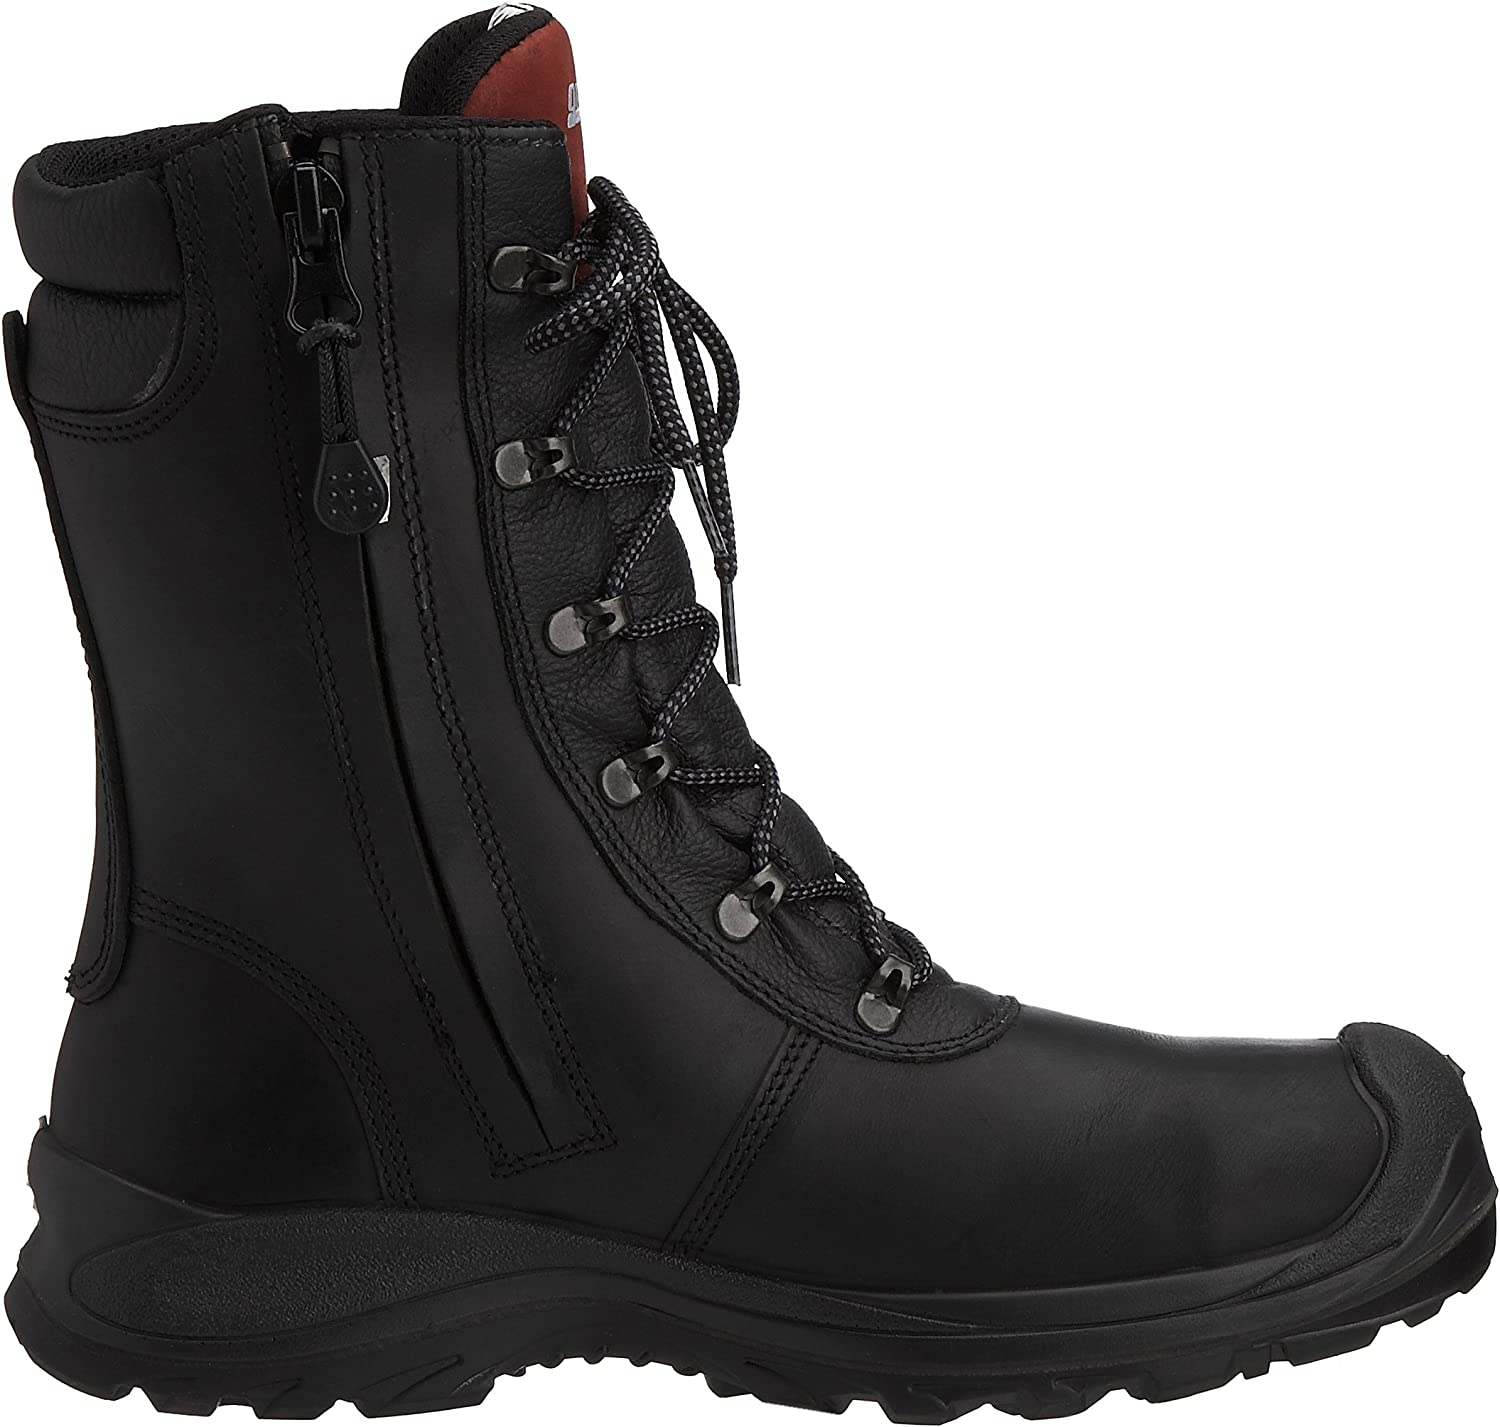 Grisport Mens Boulder Safety Boot